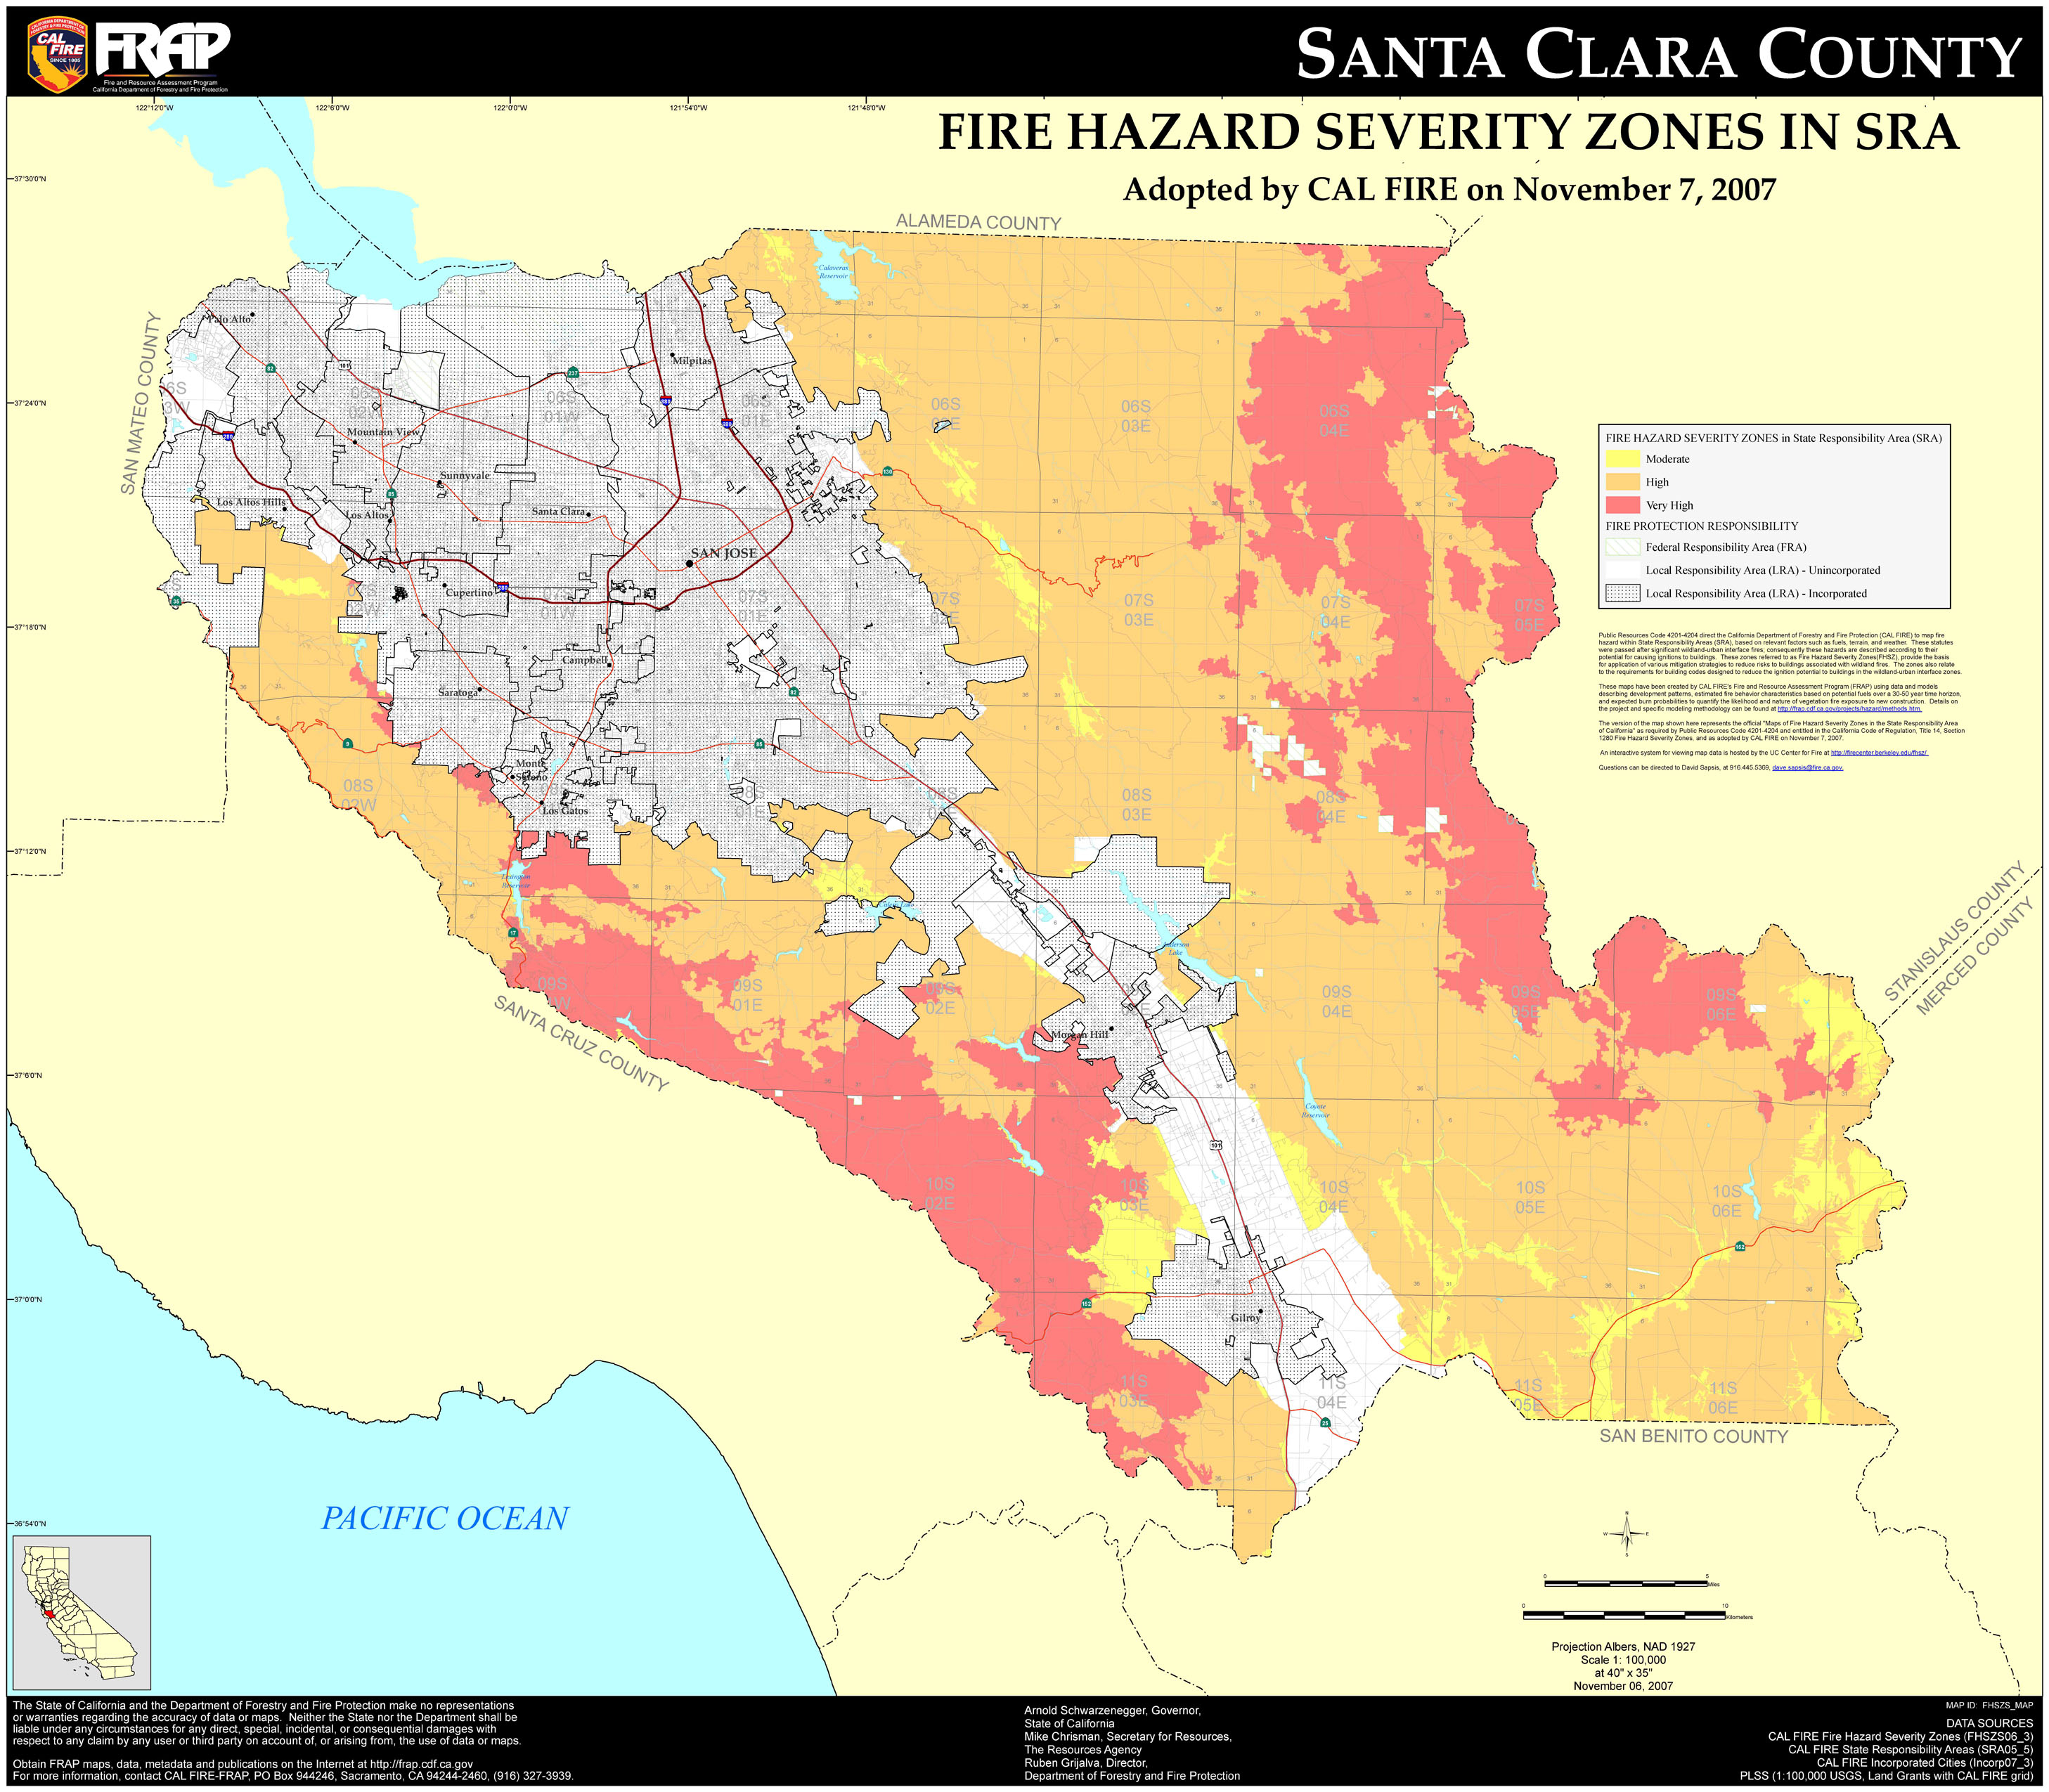 Fhszs Map Maps Of California Map Of Santa Clara California - Klipy - Santa Clara California Map